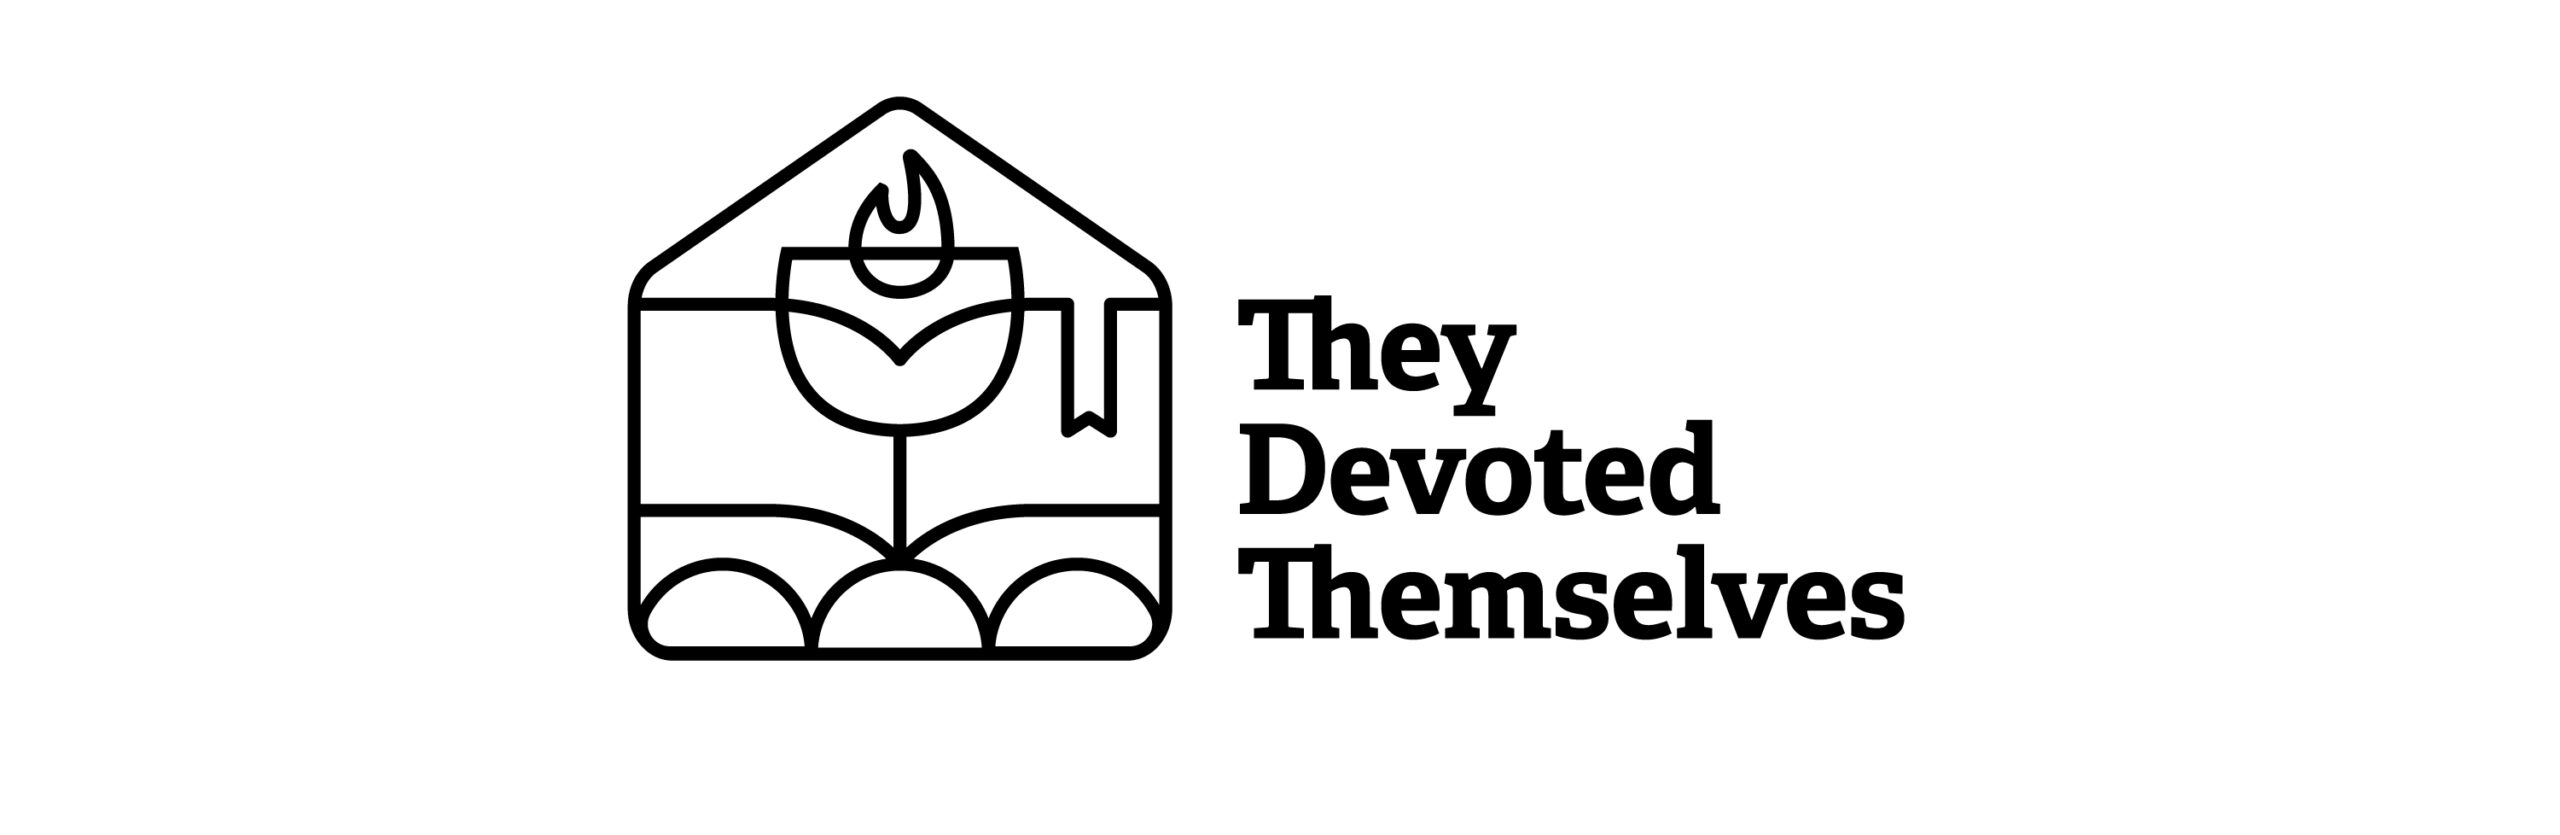 They Devoted Themselves Logo